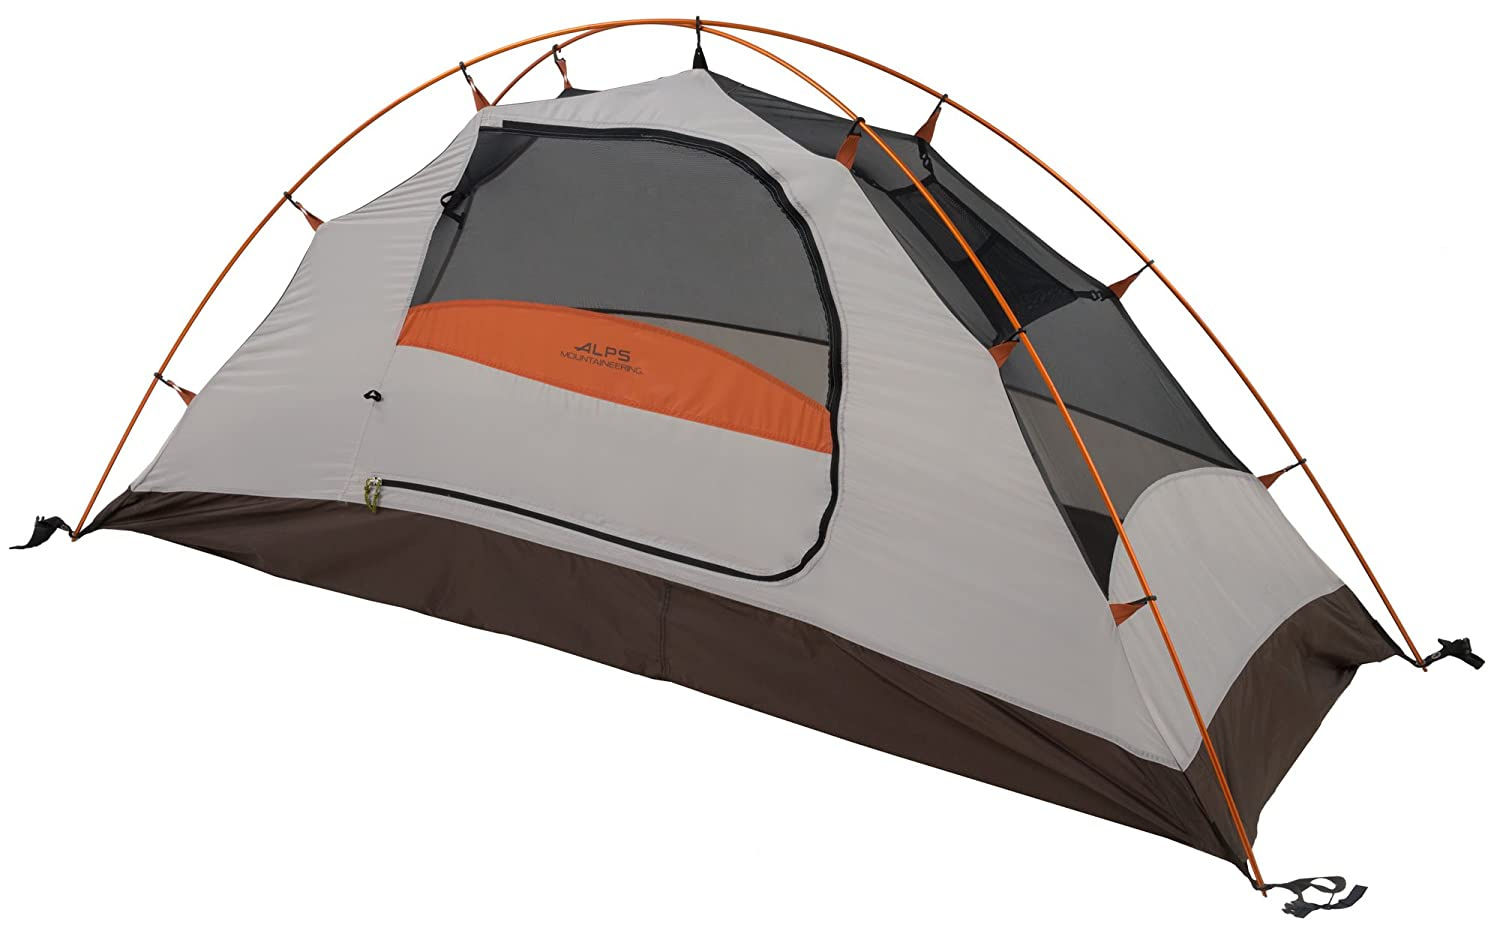 Top 10 Best One Person Tents